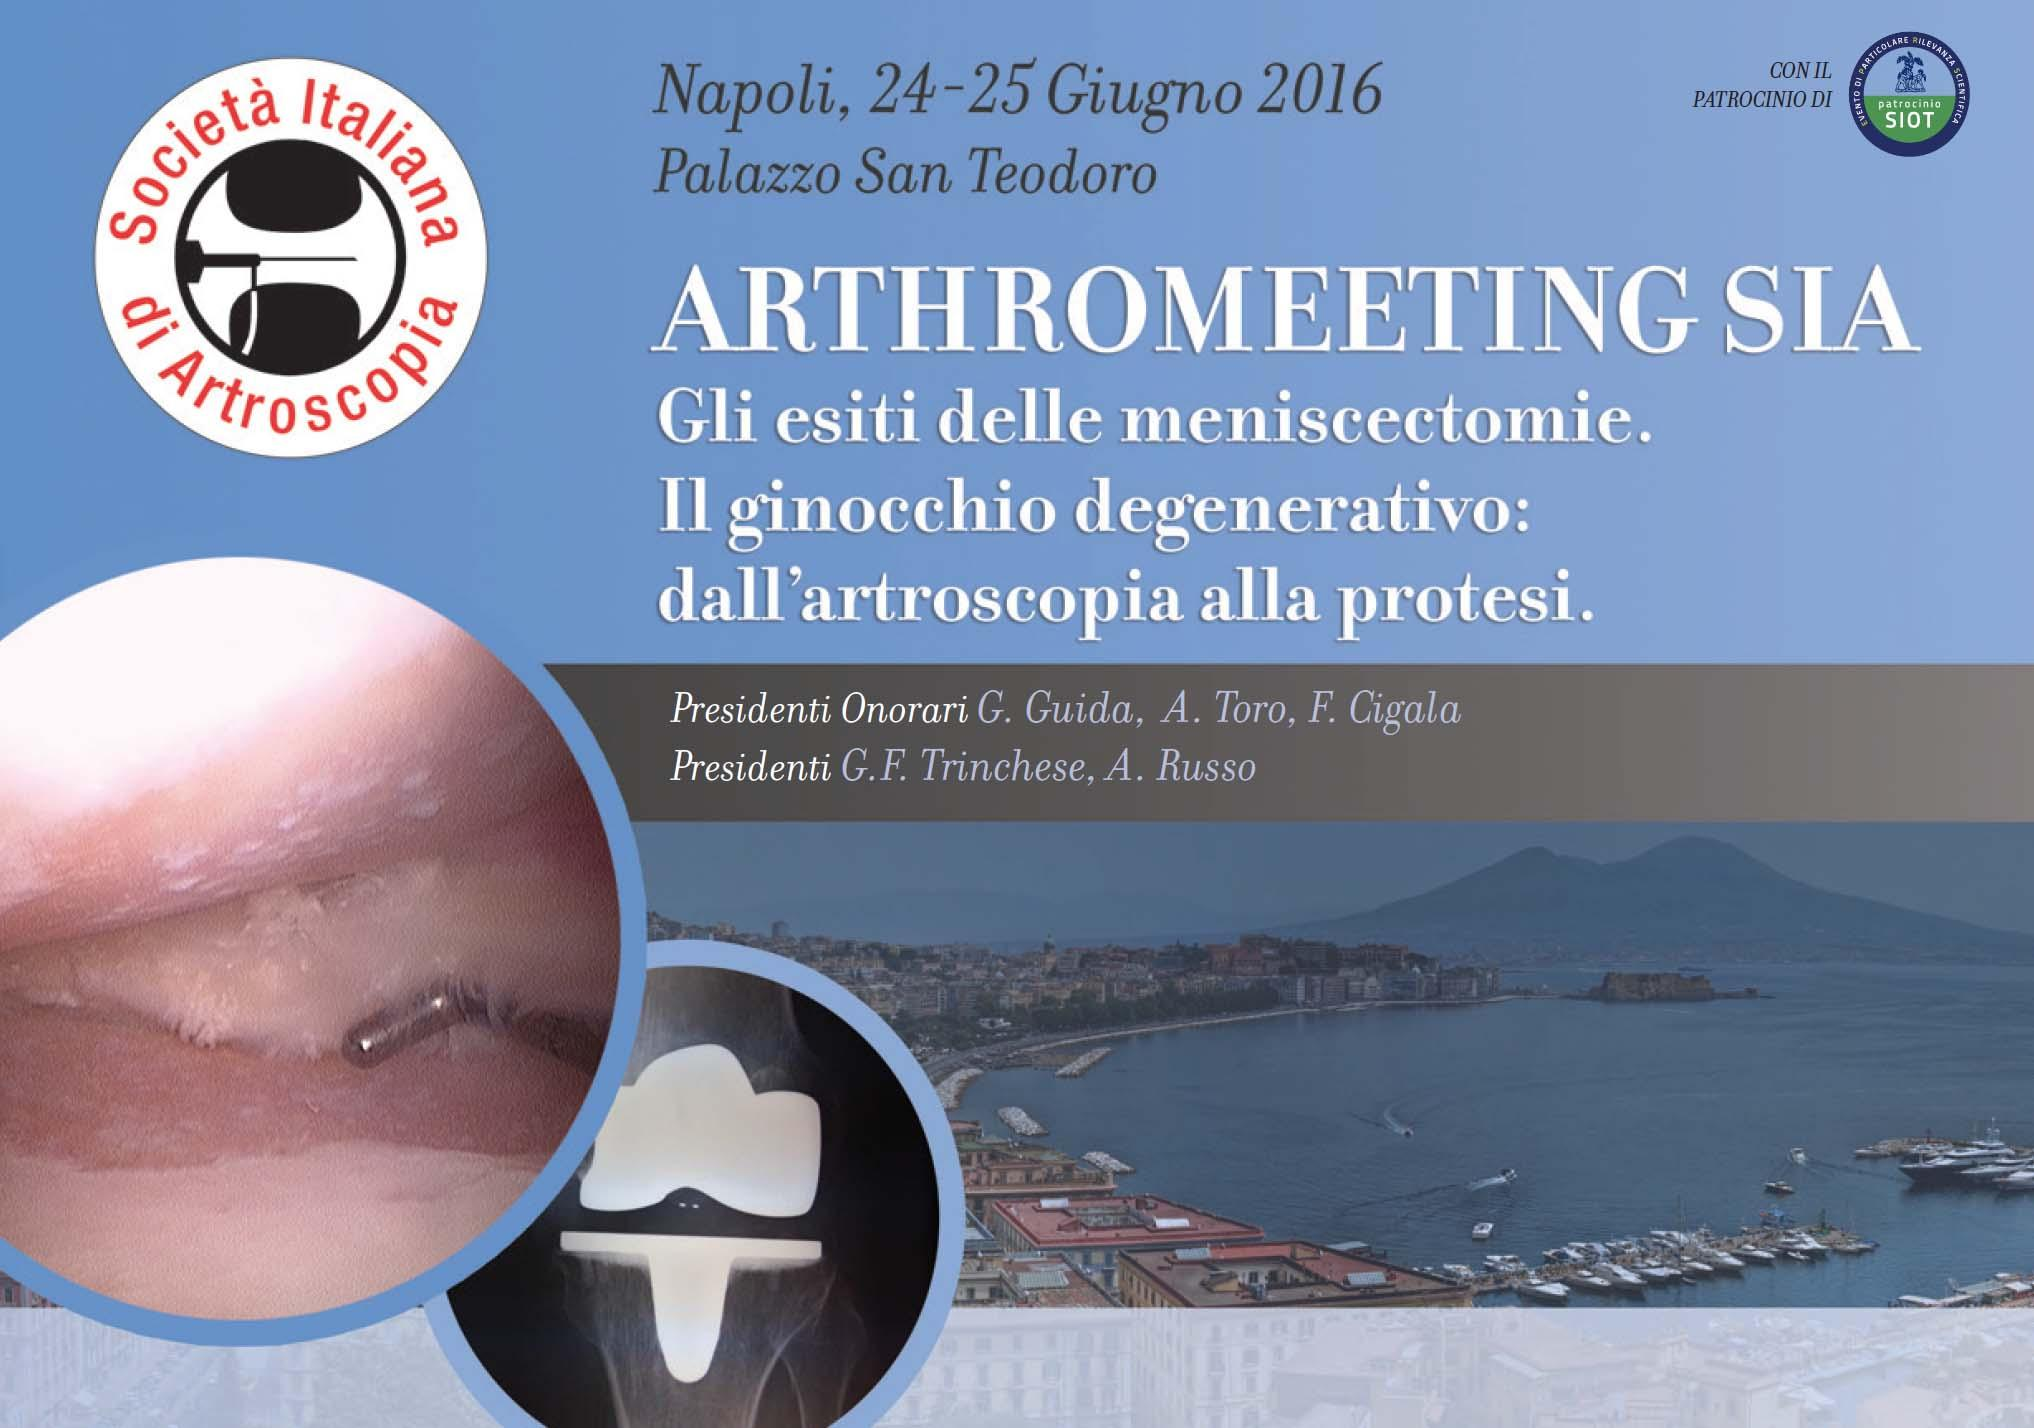 arthromeeting sia copia